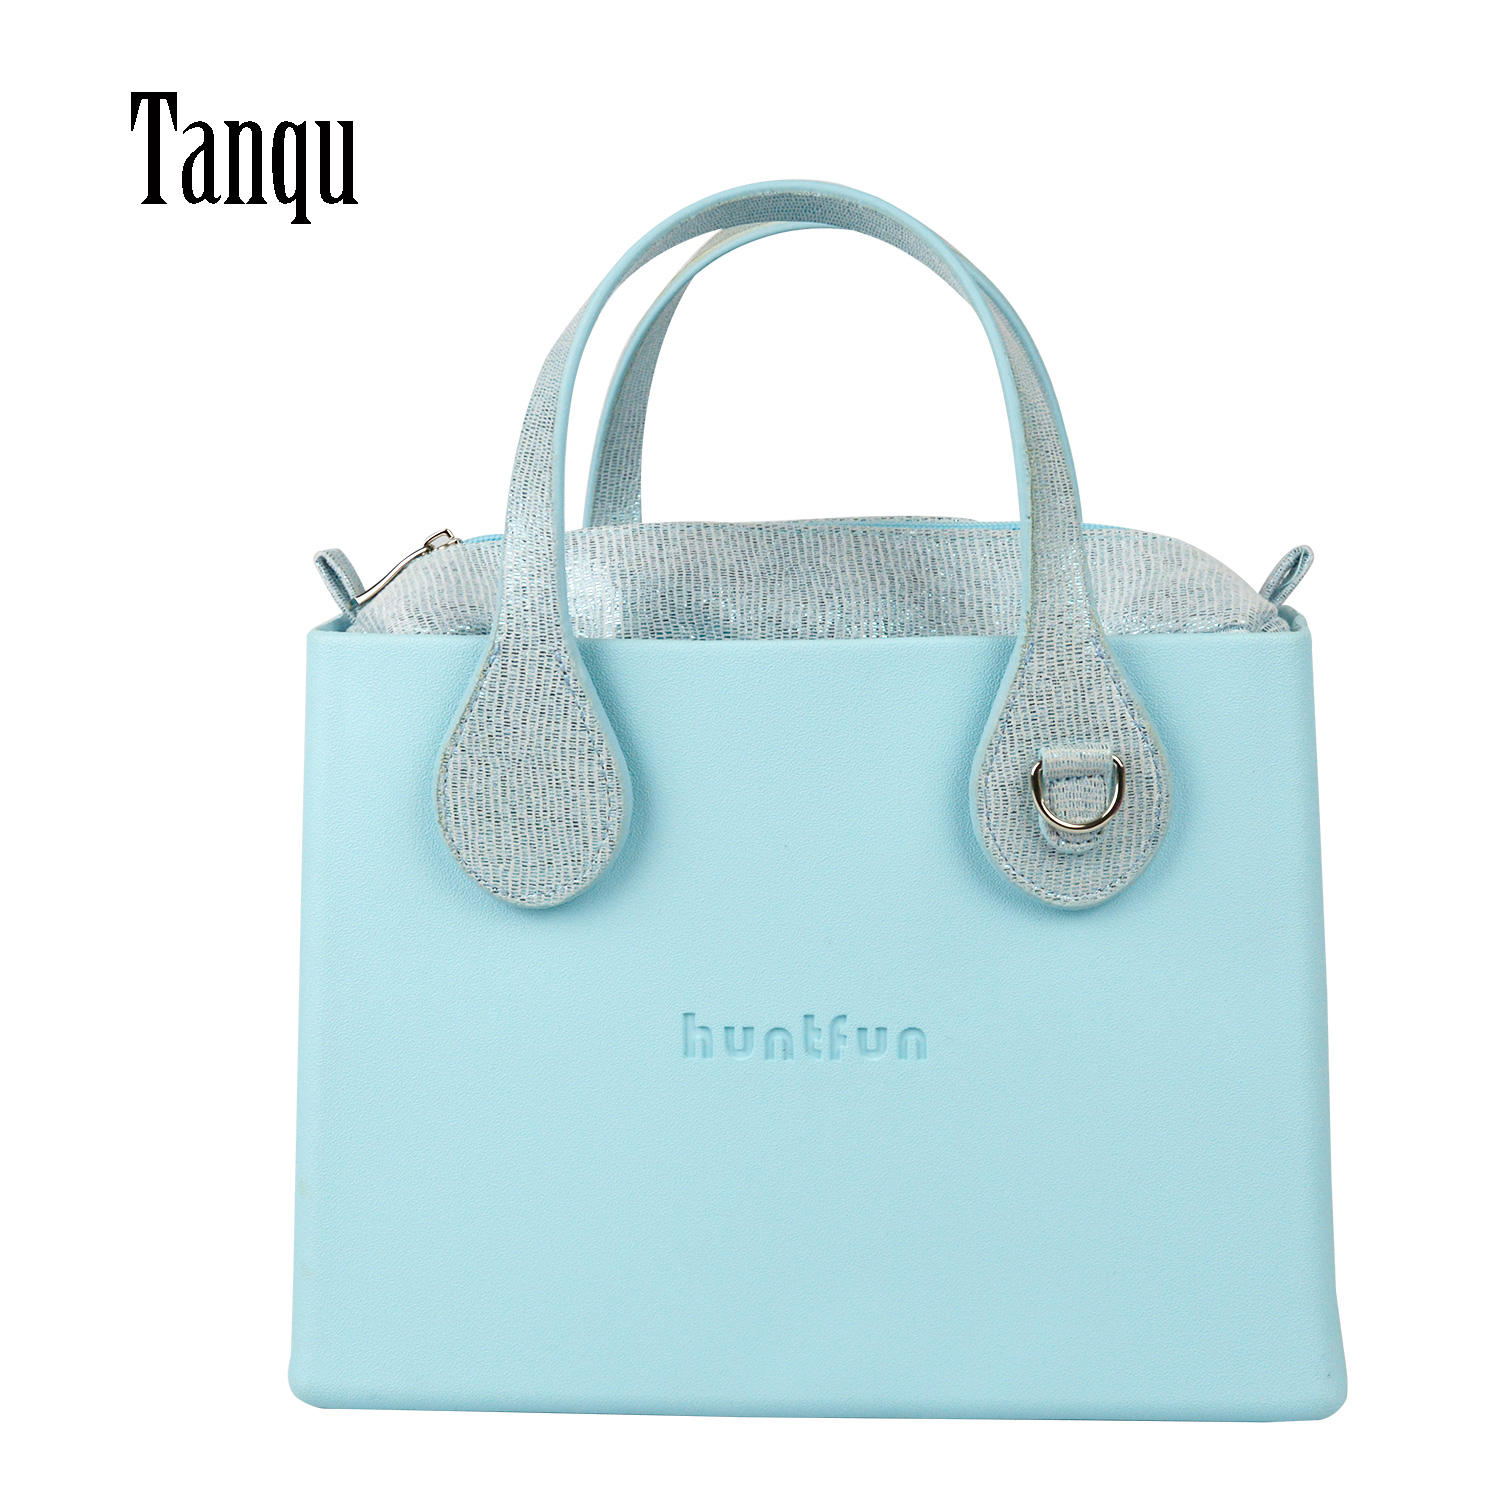 2019 New tanqu EVA square Bag with Gilding Insert flat Handles waterproof Obag style women O